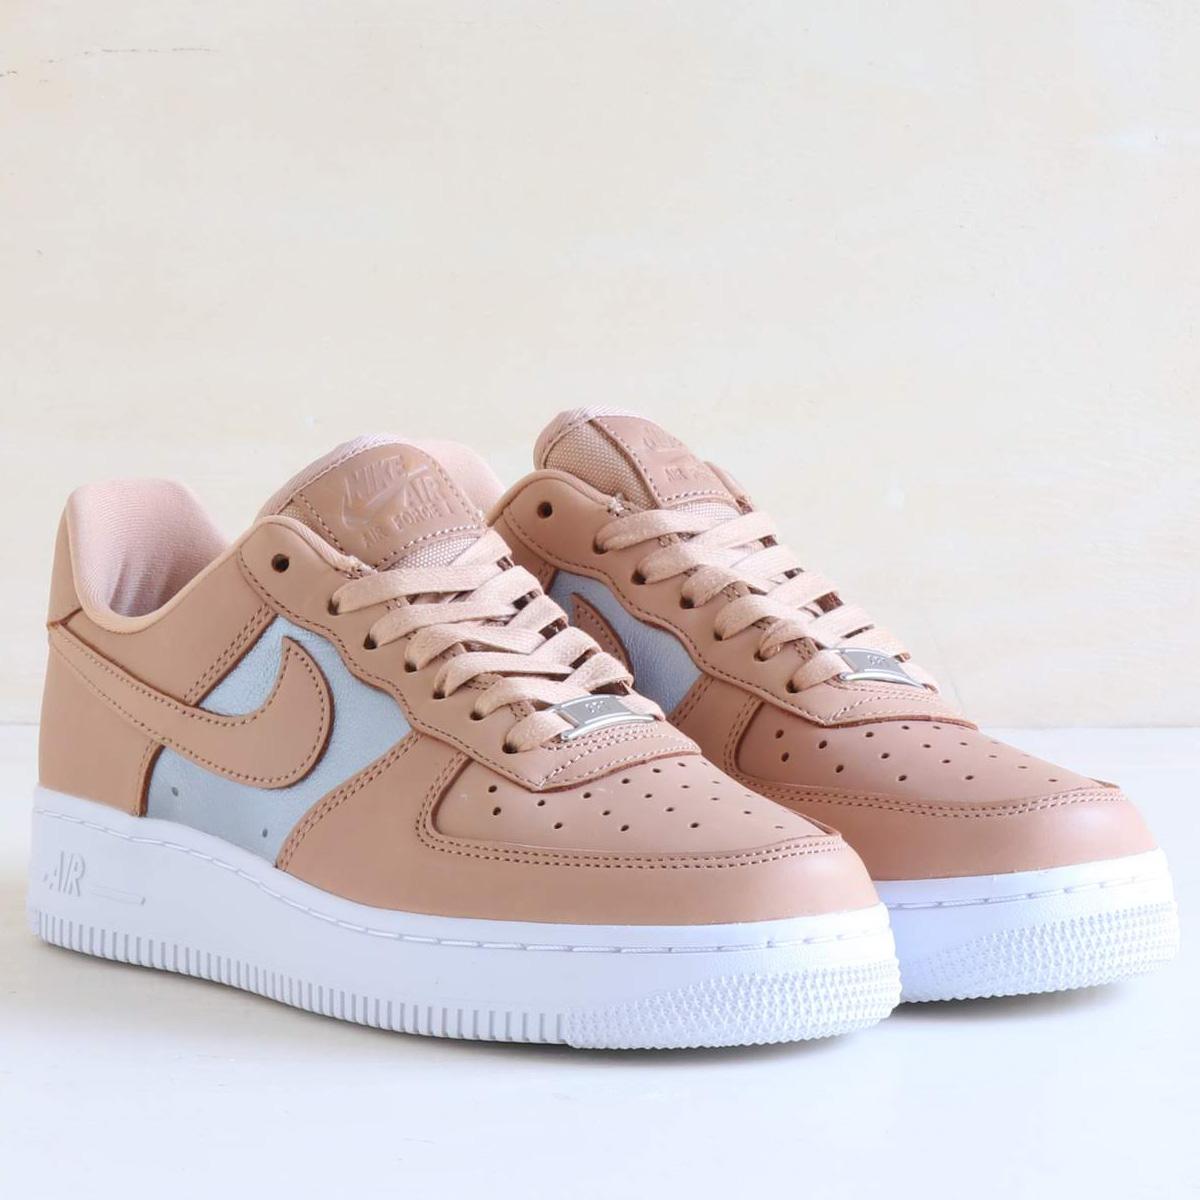 purchase cheap d7f70 3c270 NIKE W AIR FORCE 1  07 SE PRM (Nike women air force 1 07 ...